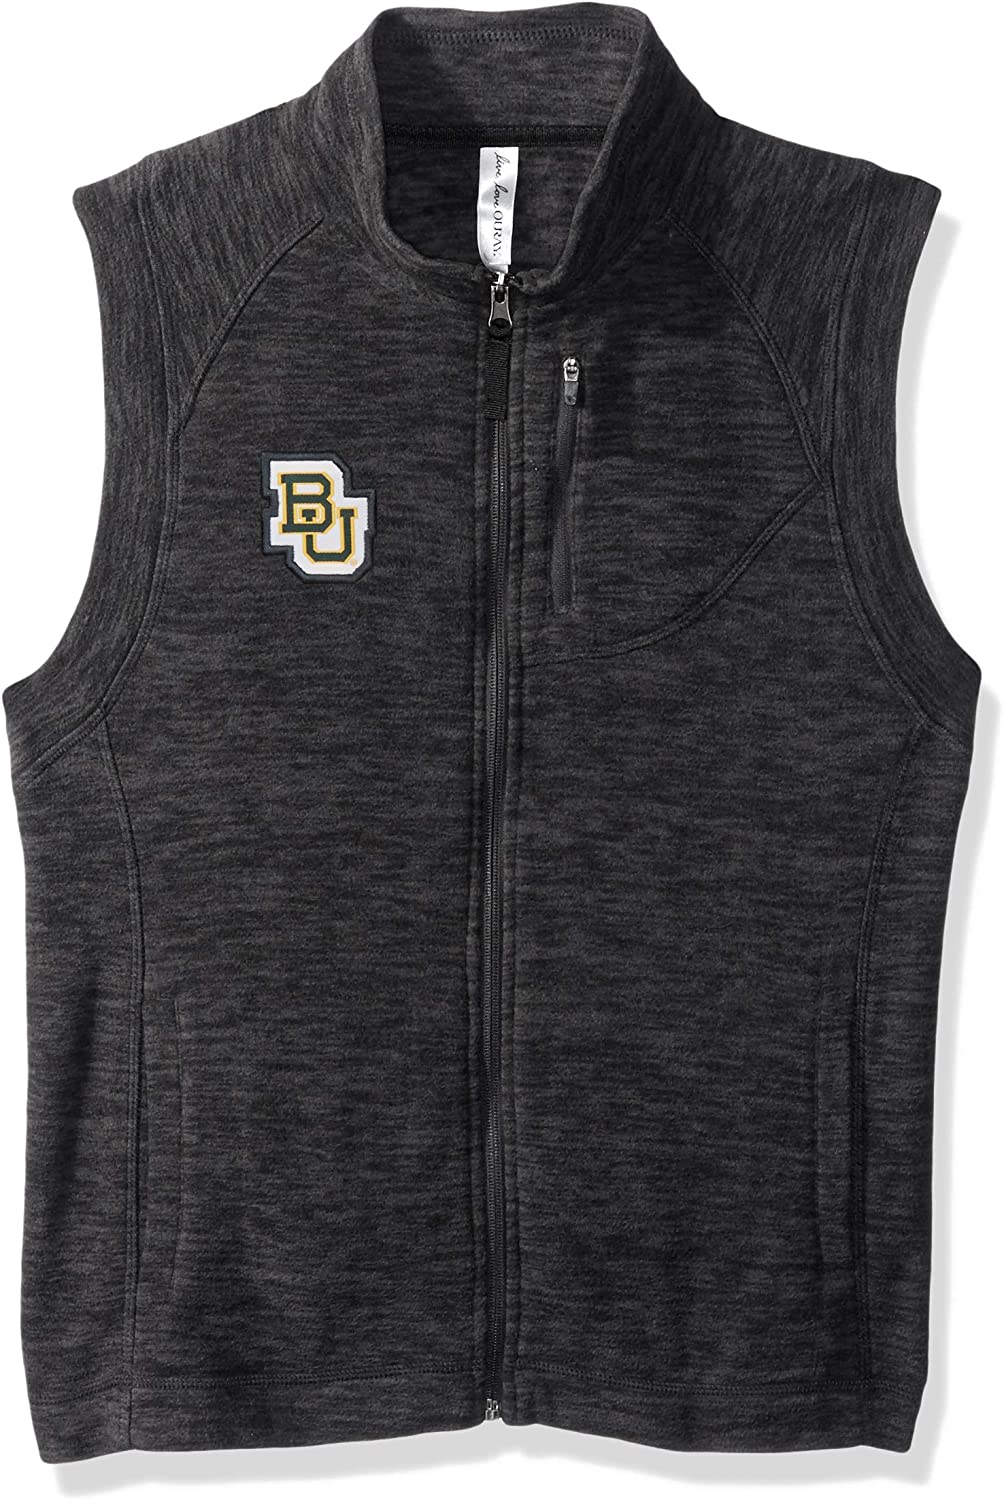 X-Large Charcoal Heather Ouray Sportswear NCAA Baylor Bears Womens Guide Vest